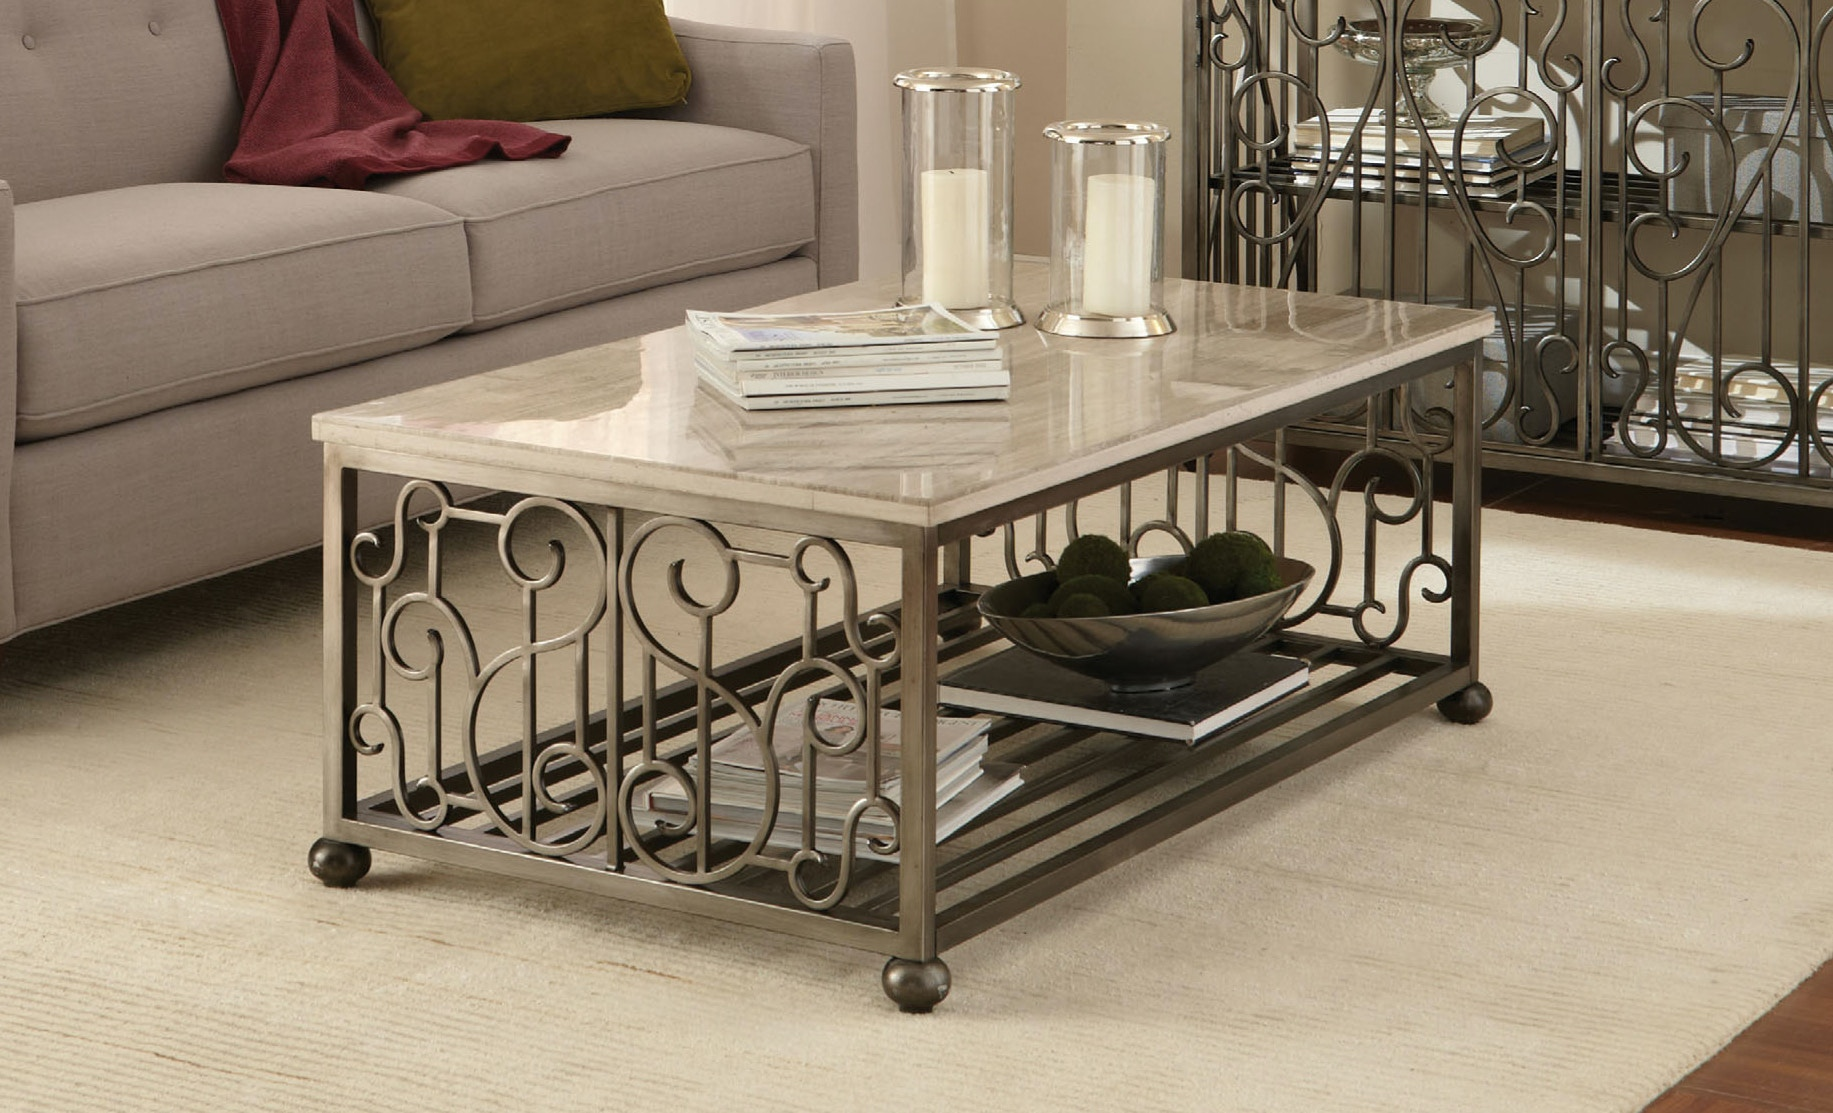 Standard Furniture Living Room Toscana End Table 044819 - Furniture Fair - Cincinnati u0026 Dayton ...